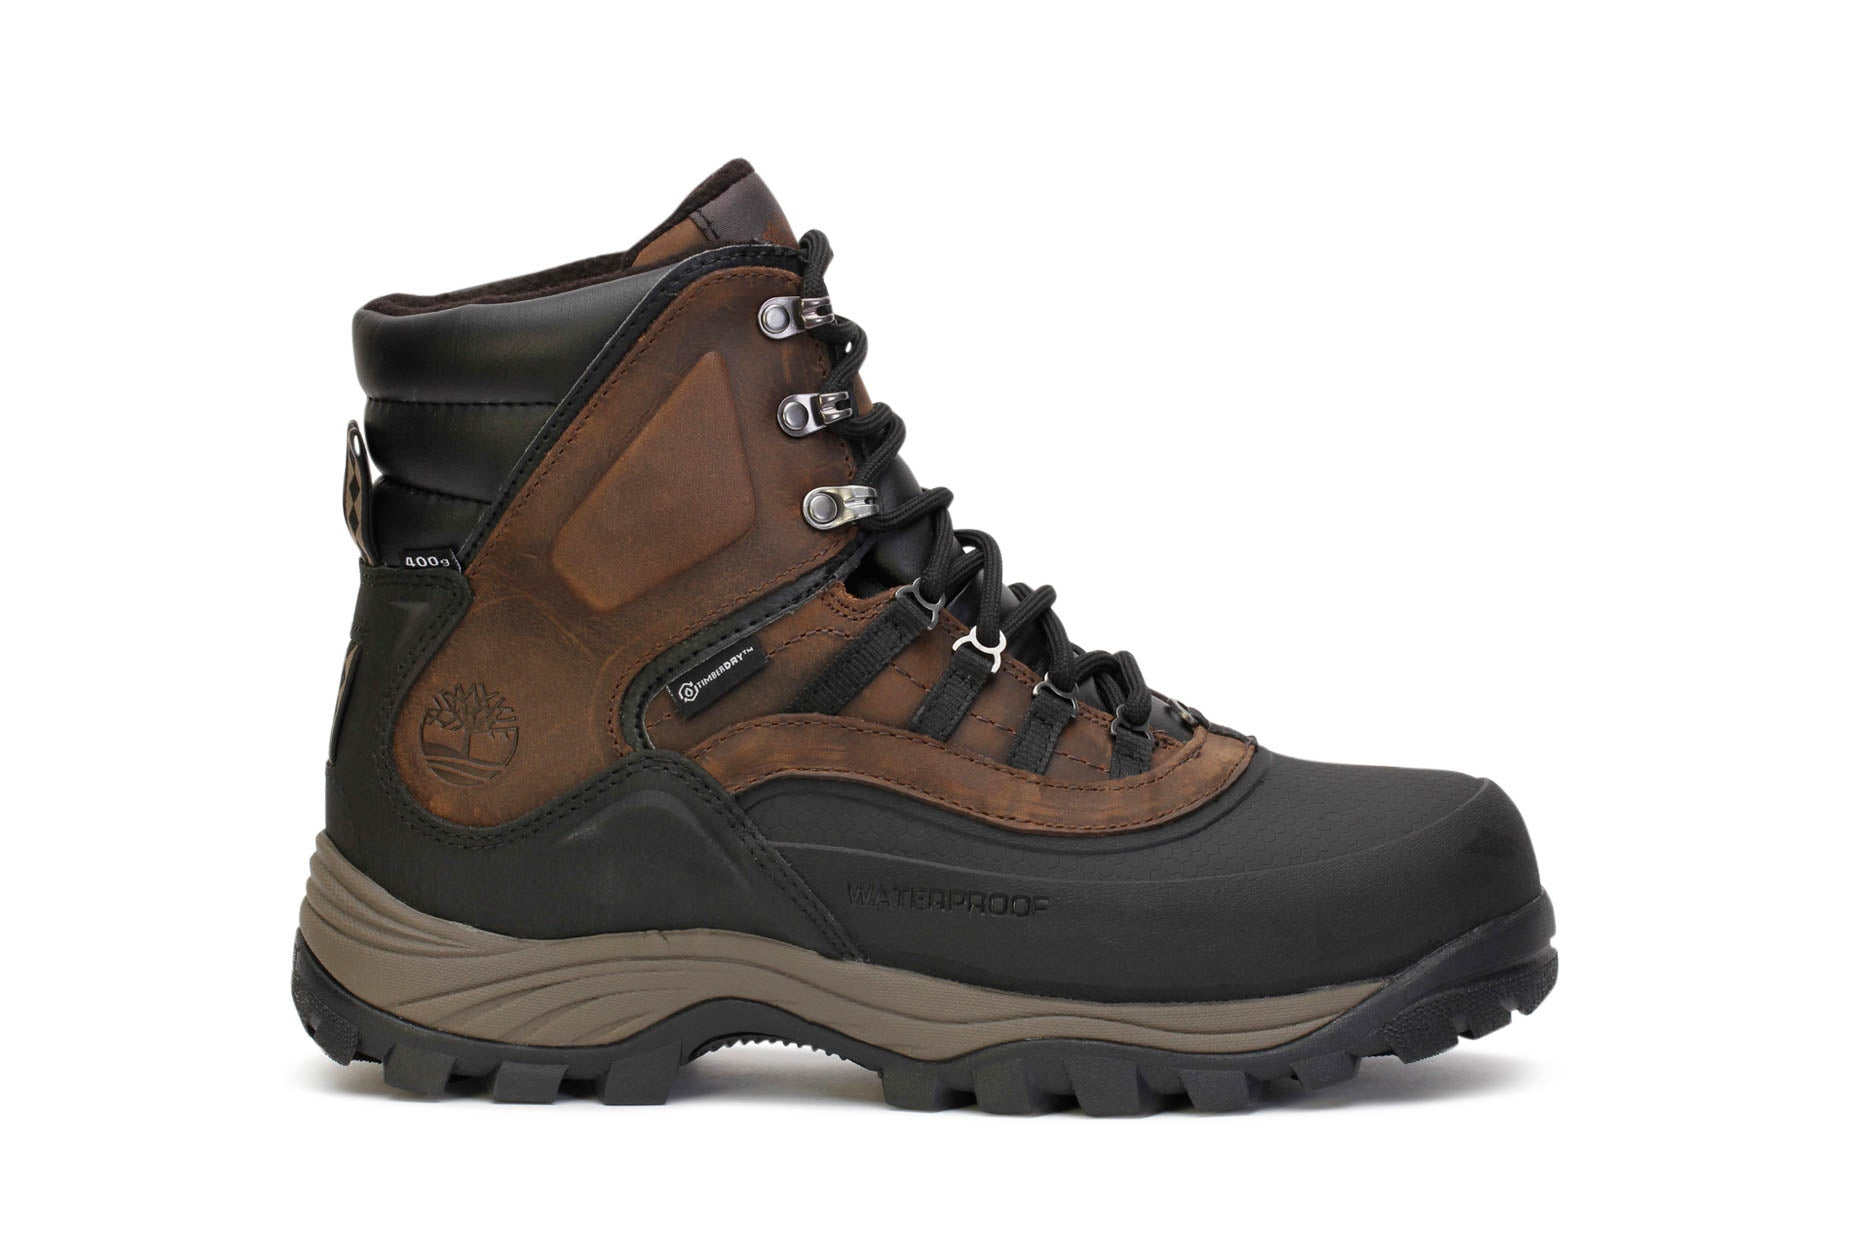 Chocoura Waterproof Timberland Boots